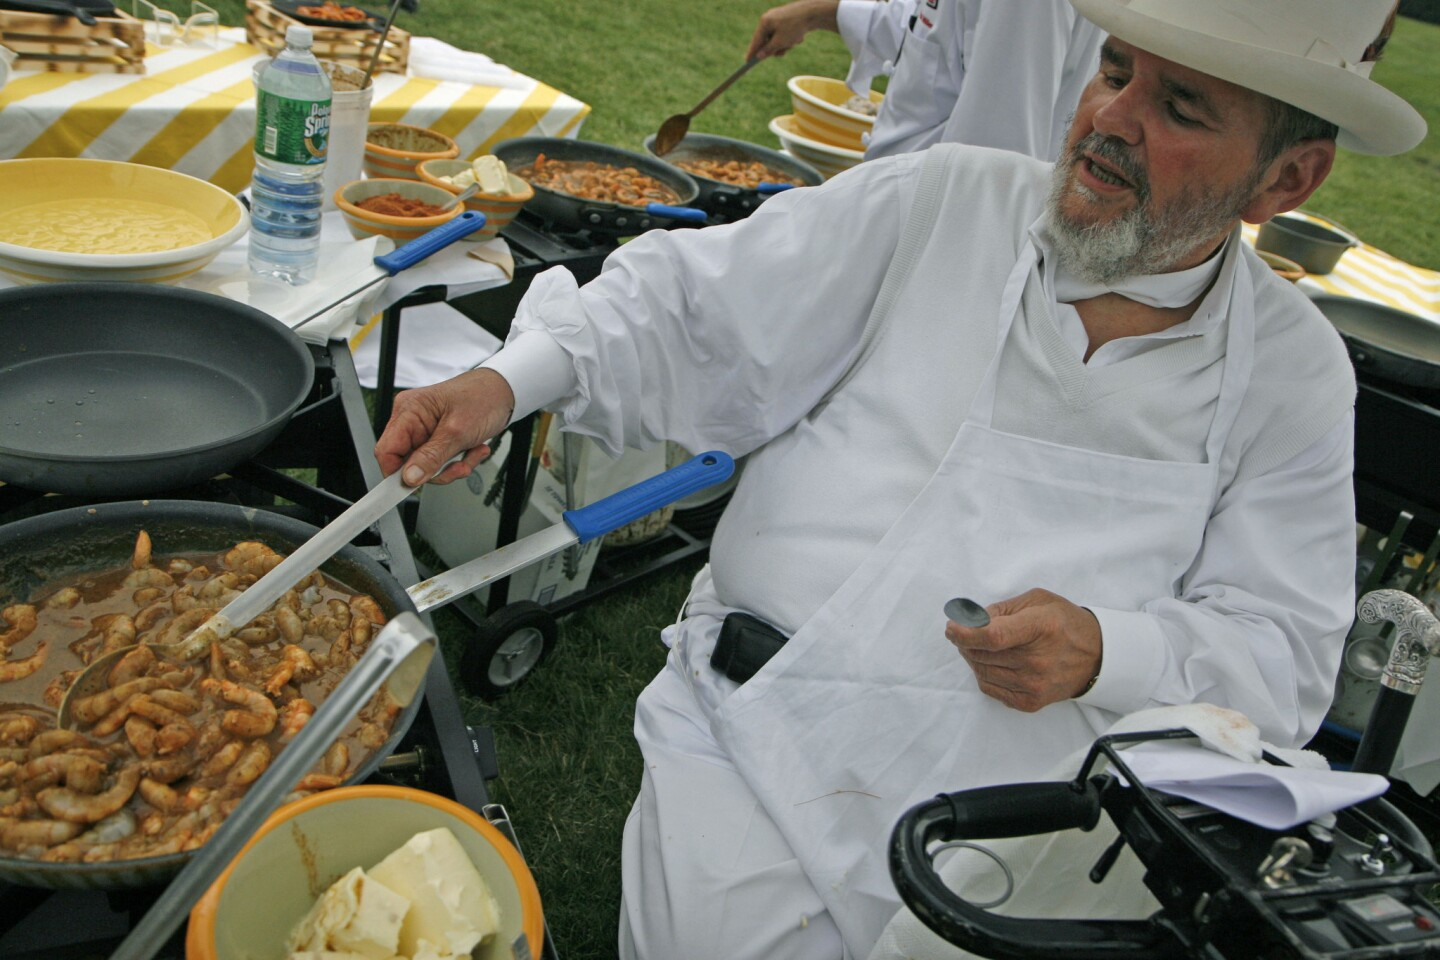 Chef Paul Prudhomme prepares barbecue shrimp at the annual White House congressional picnic in 2007.